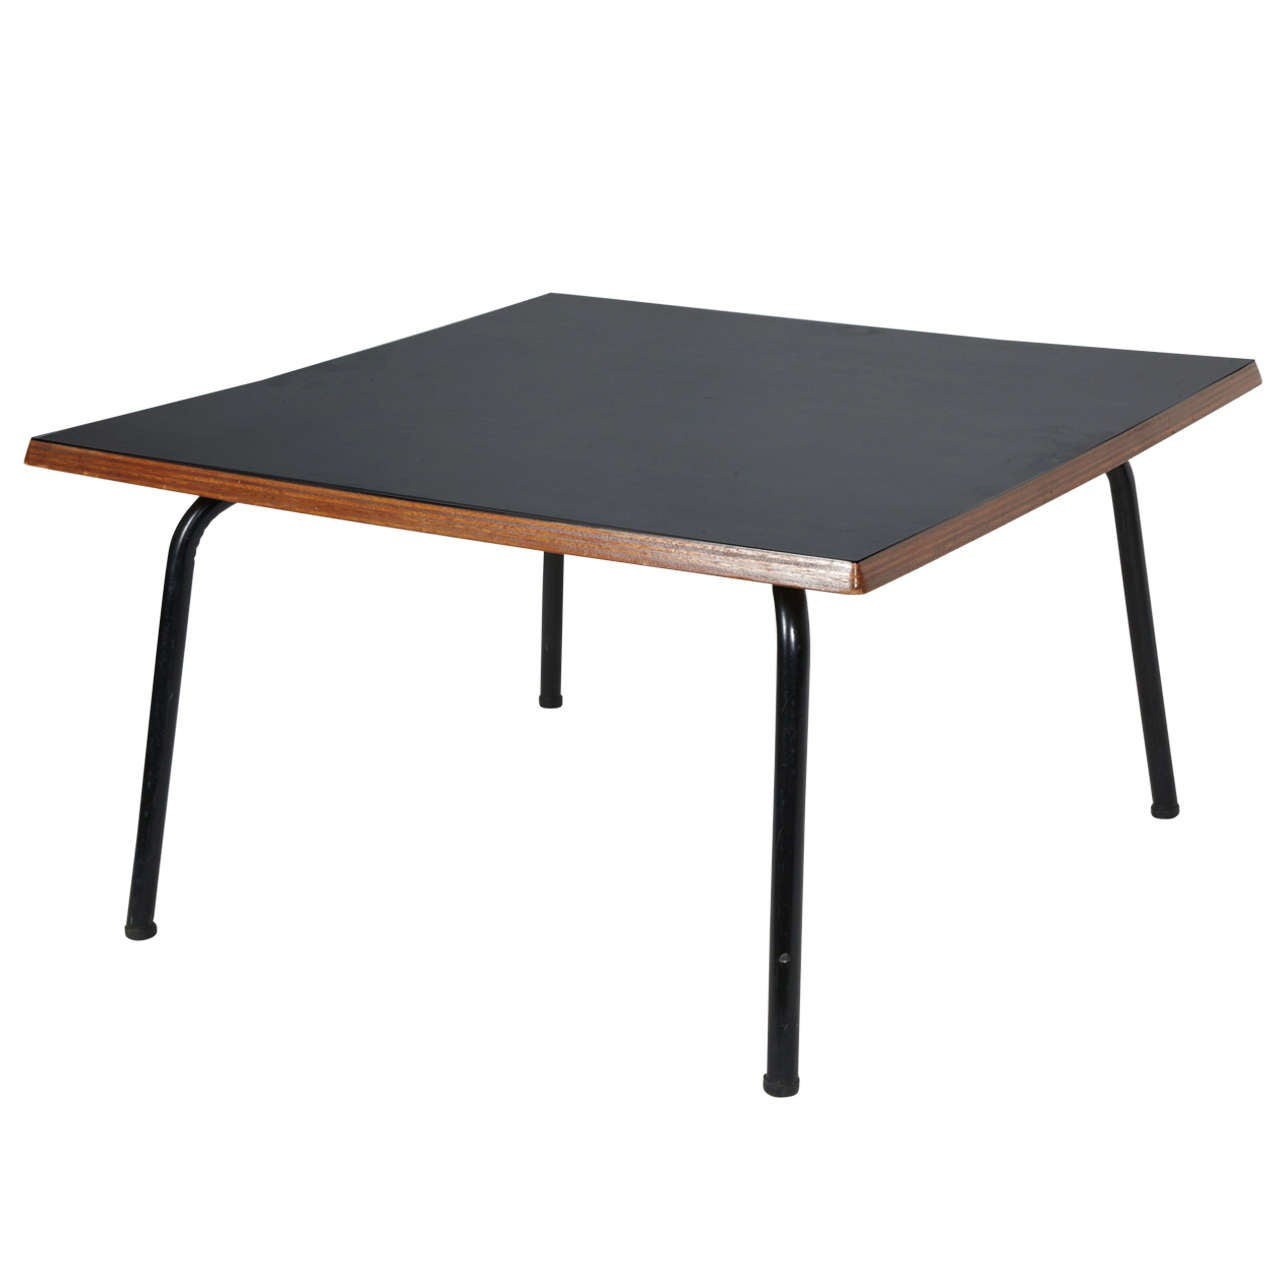 Charlotte Perriand Square Coffee Table 1953 For Sale At 1stdibs